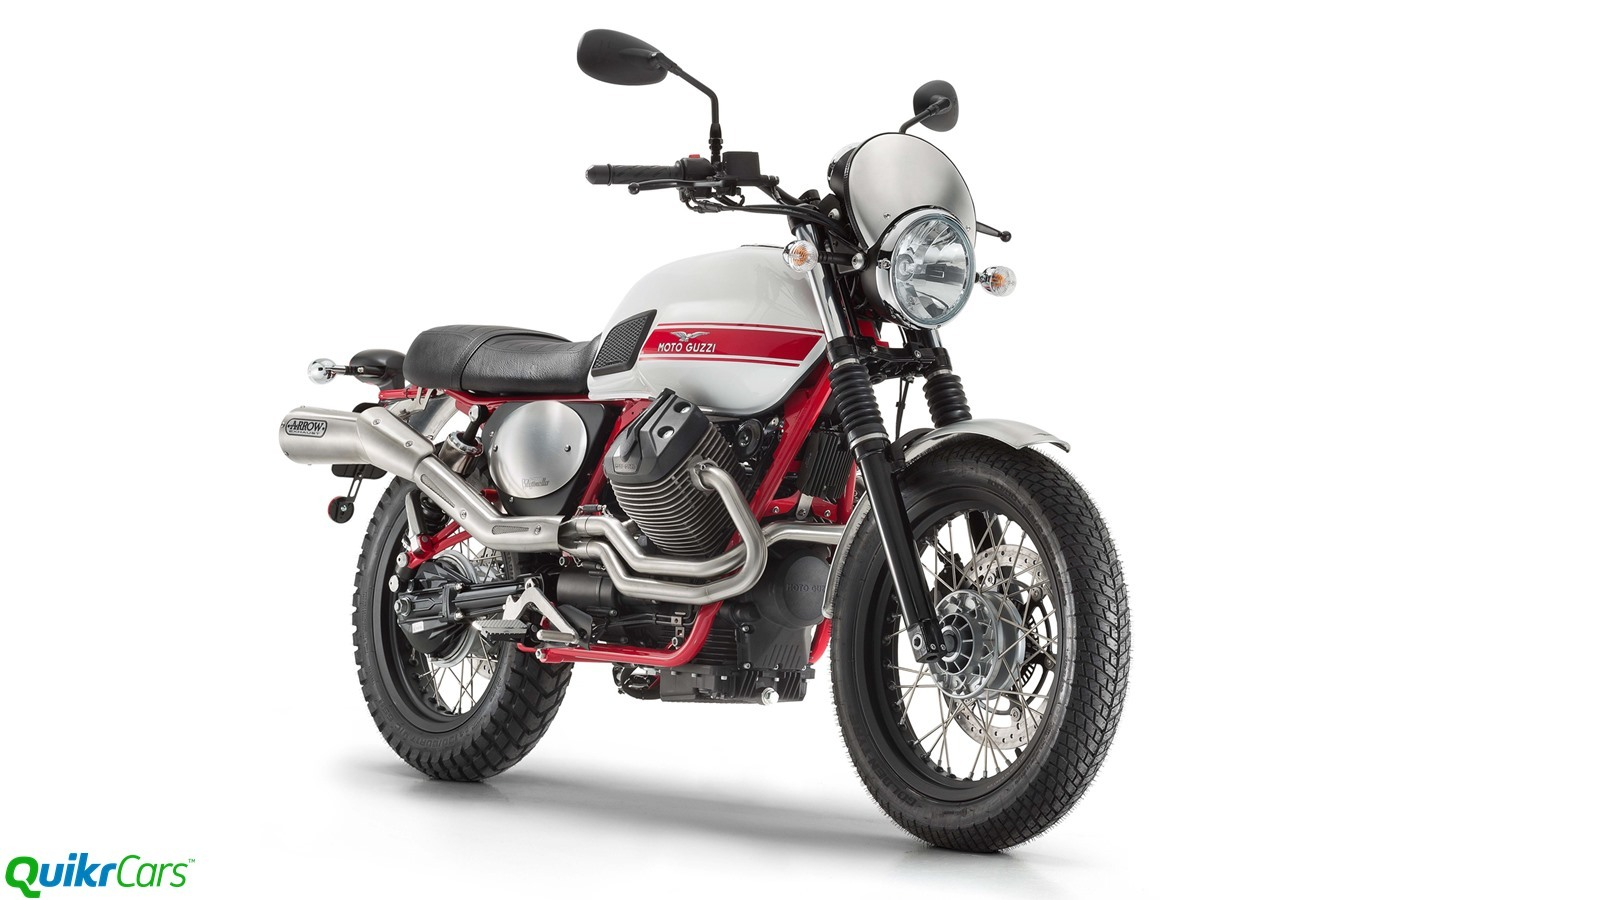 2016 Moto Guzzi V7II Stornello unveiled at EICMA